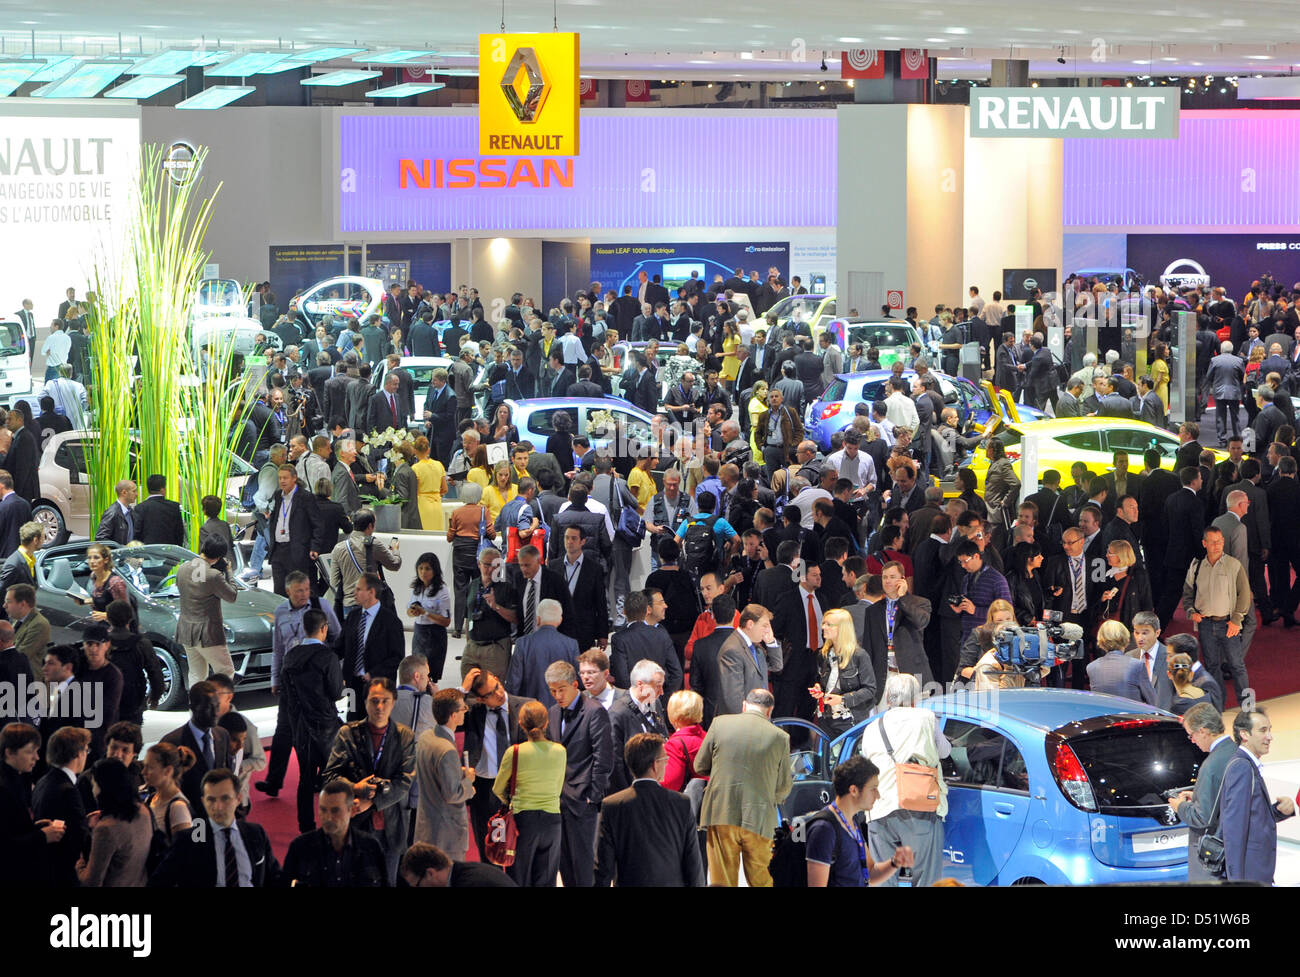 Visitors crowd at the booth of Renault during the 2010 Paris Motor Show in Paris, France, 30 September 2010. Some Stock Photo